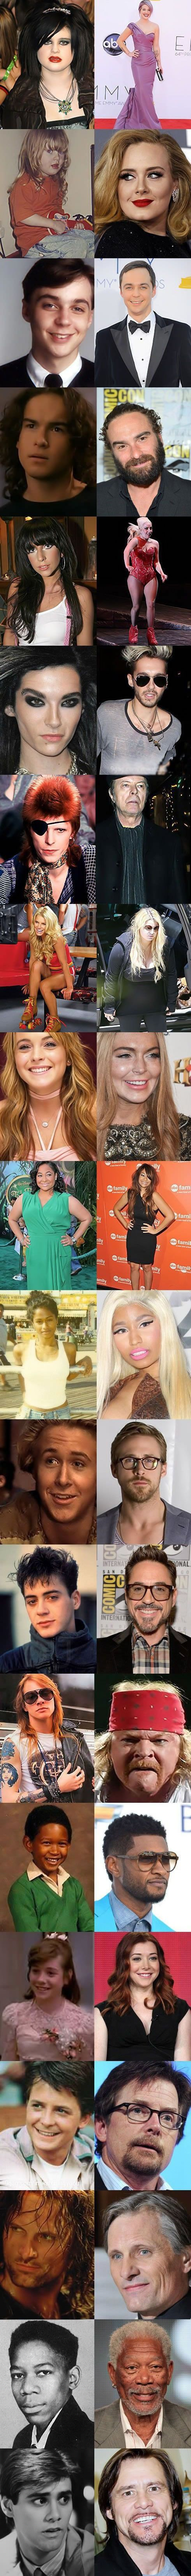 20 Photos that Show How Celebrities Changed Over Time.. Some of the changes are really radical..